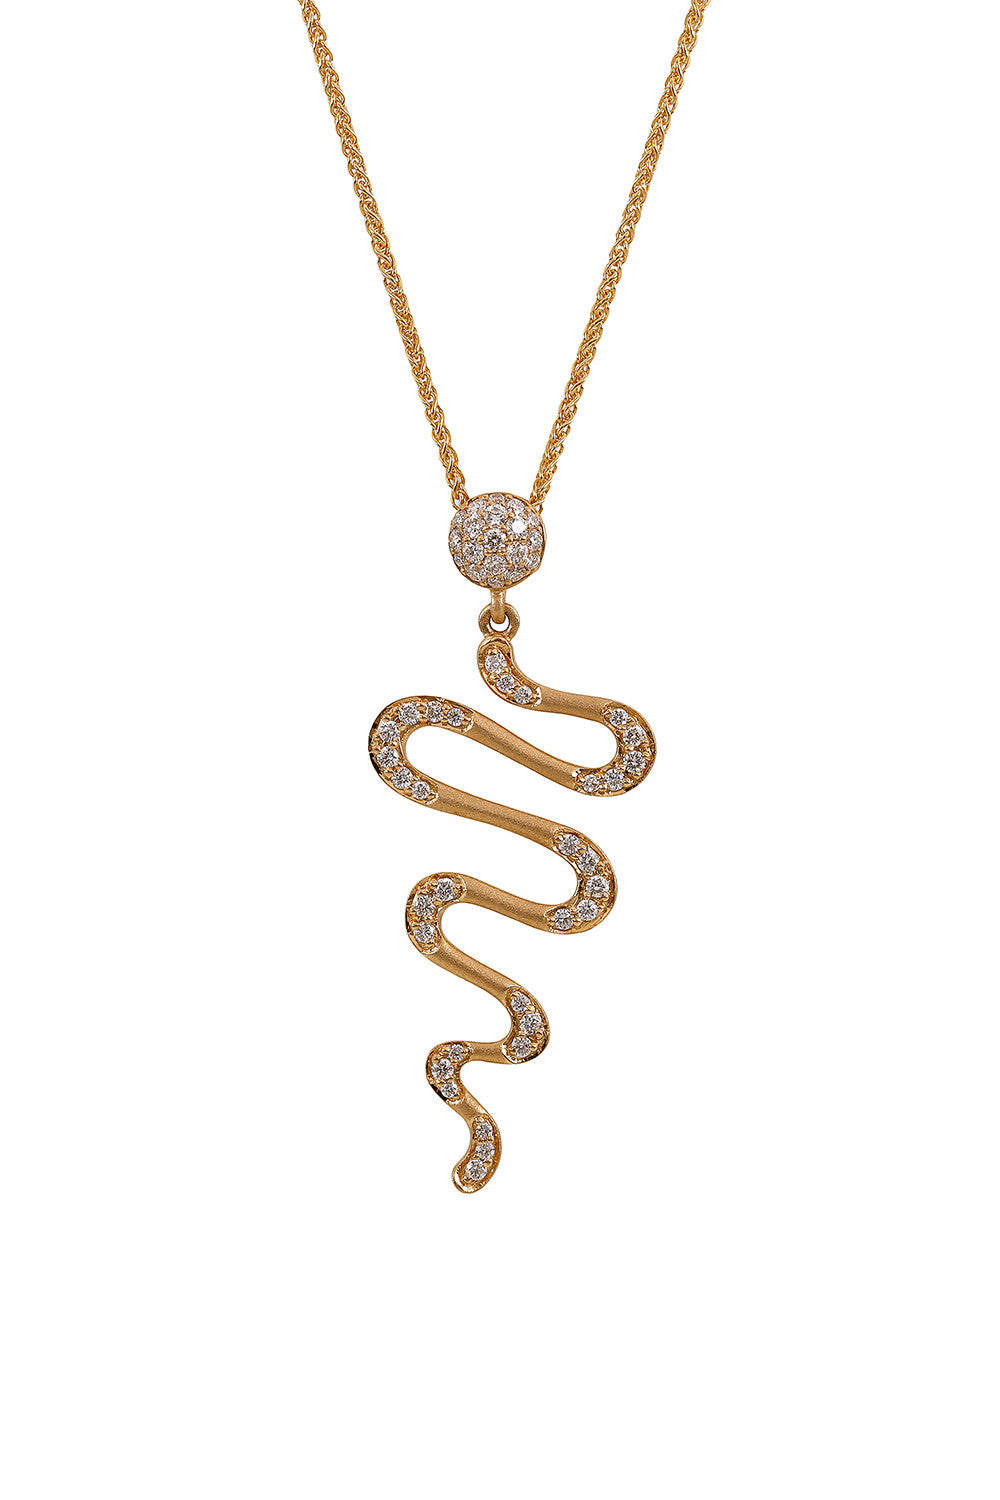 HARMONIC Drop Necklace in Yellow Gold with White Diamonds